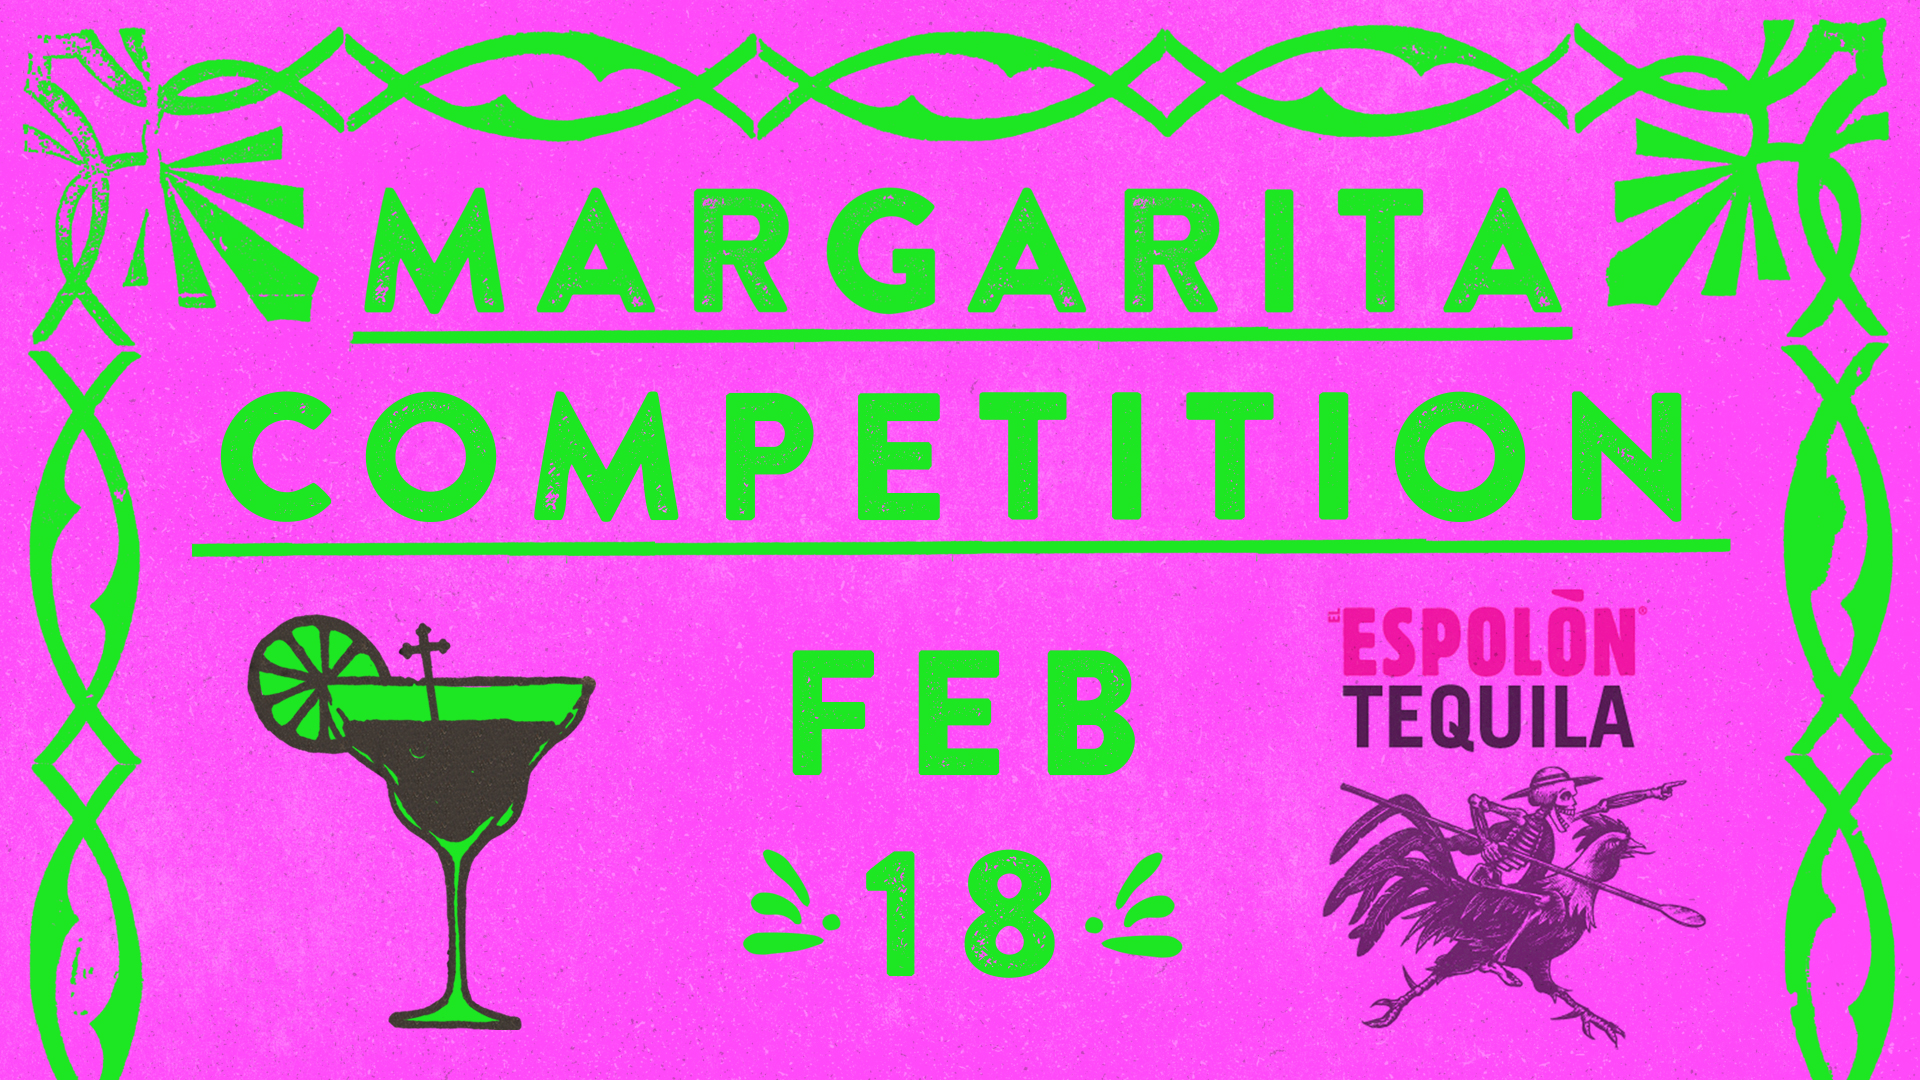 Watch as some of the most talented bartenders in yeg face off to win best margarita, bragging rights and prizes!  The competition starts at 9pm but make sure you come early to join us for Sunday dinner. Book your table  HERE .